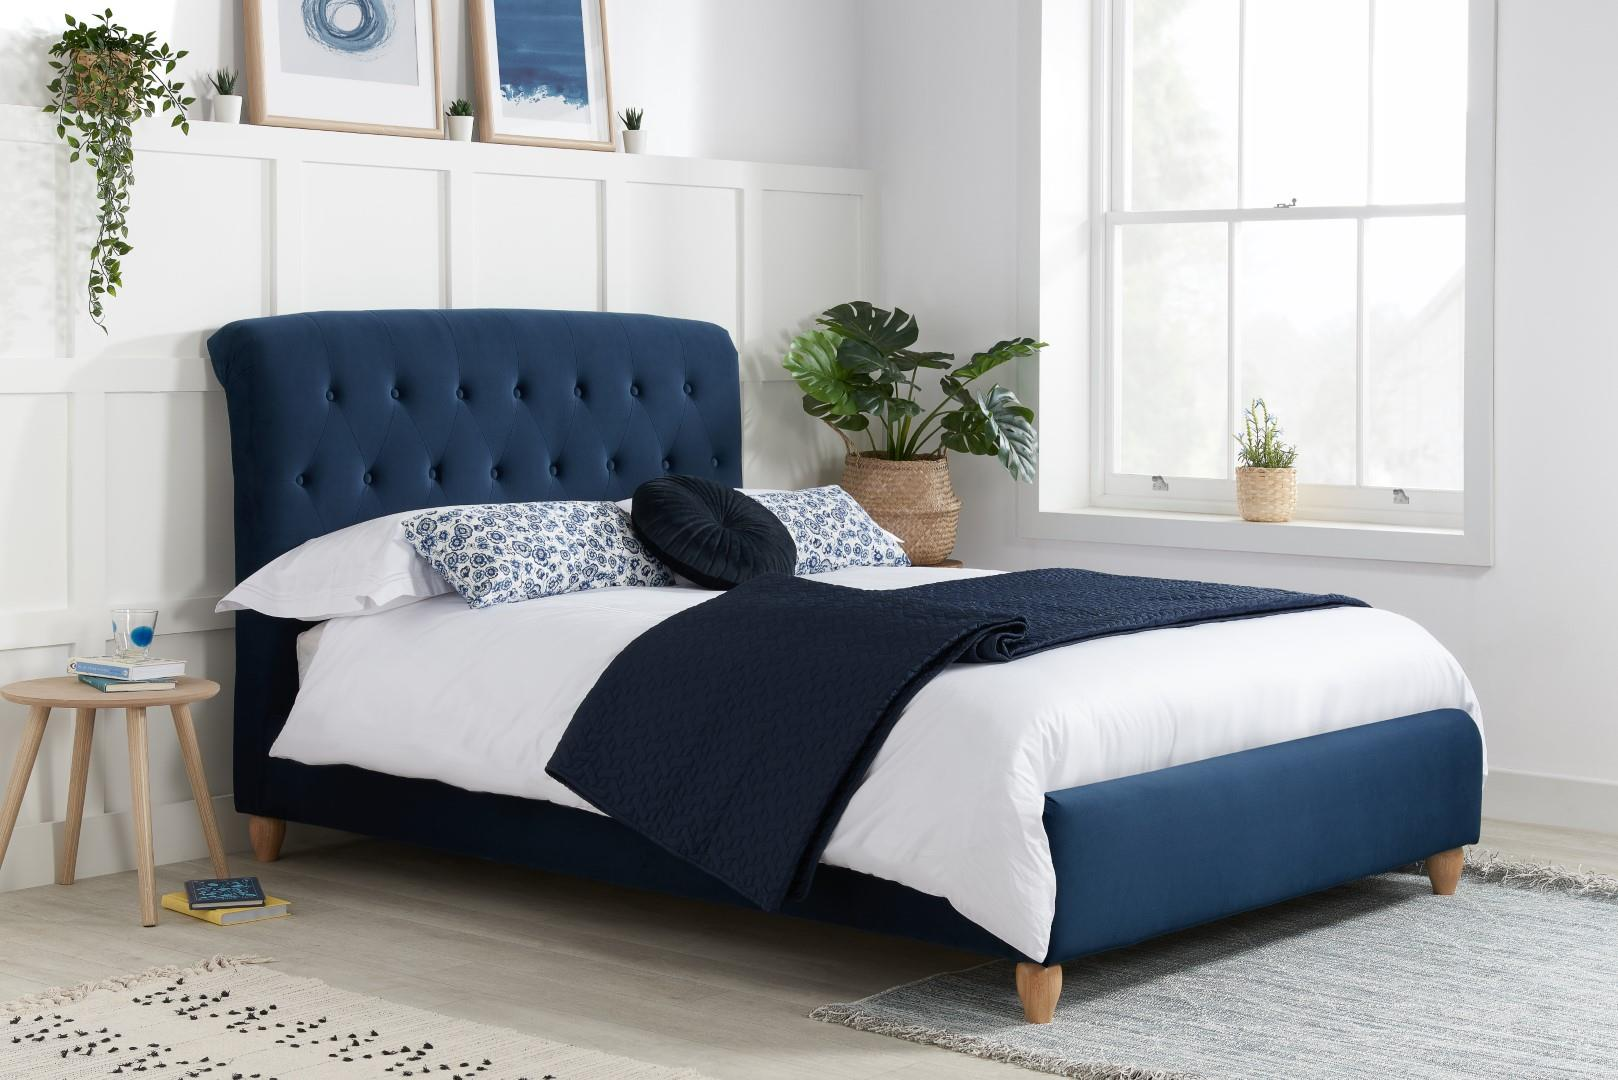 Brompton Upholstered Headboard Bed Frame 135cm 4FT6 Blue Fabric Wood Double